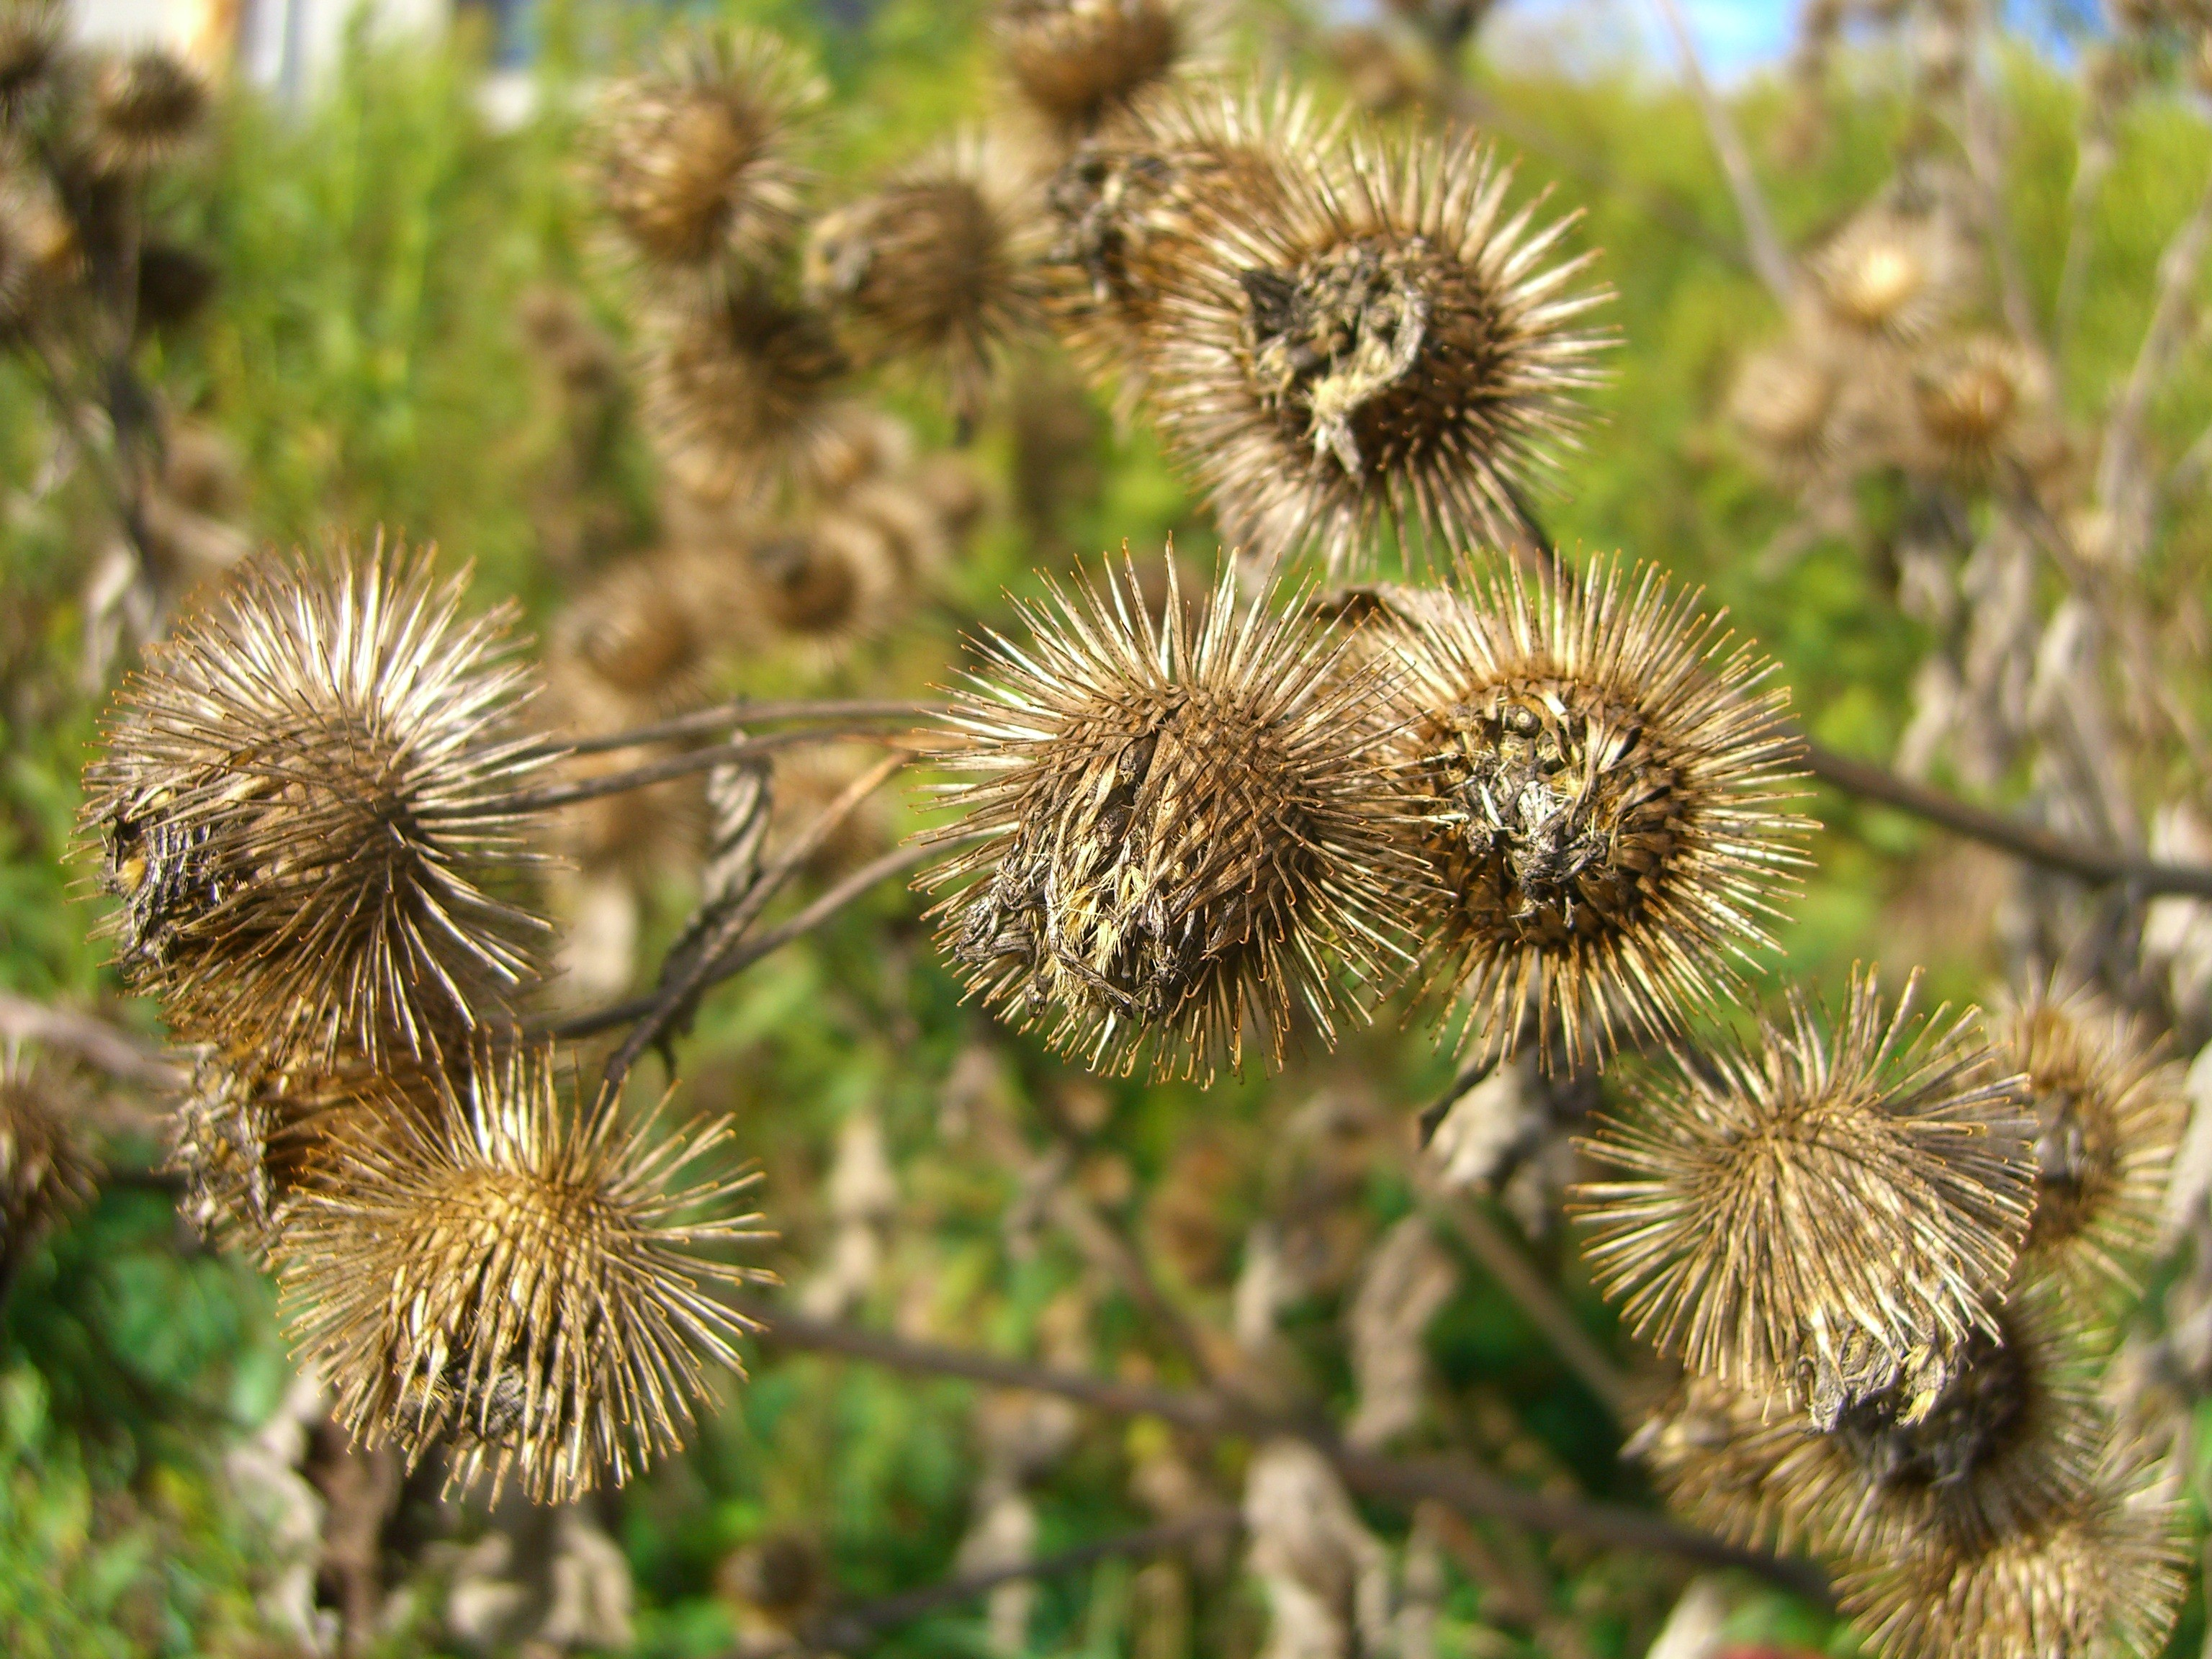 Canal Flora: Burdock – The Museum of Thin Objects